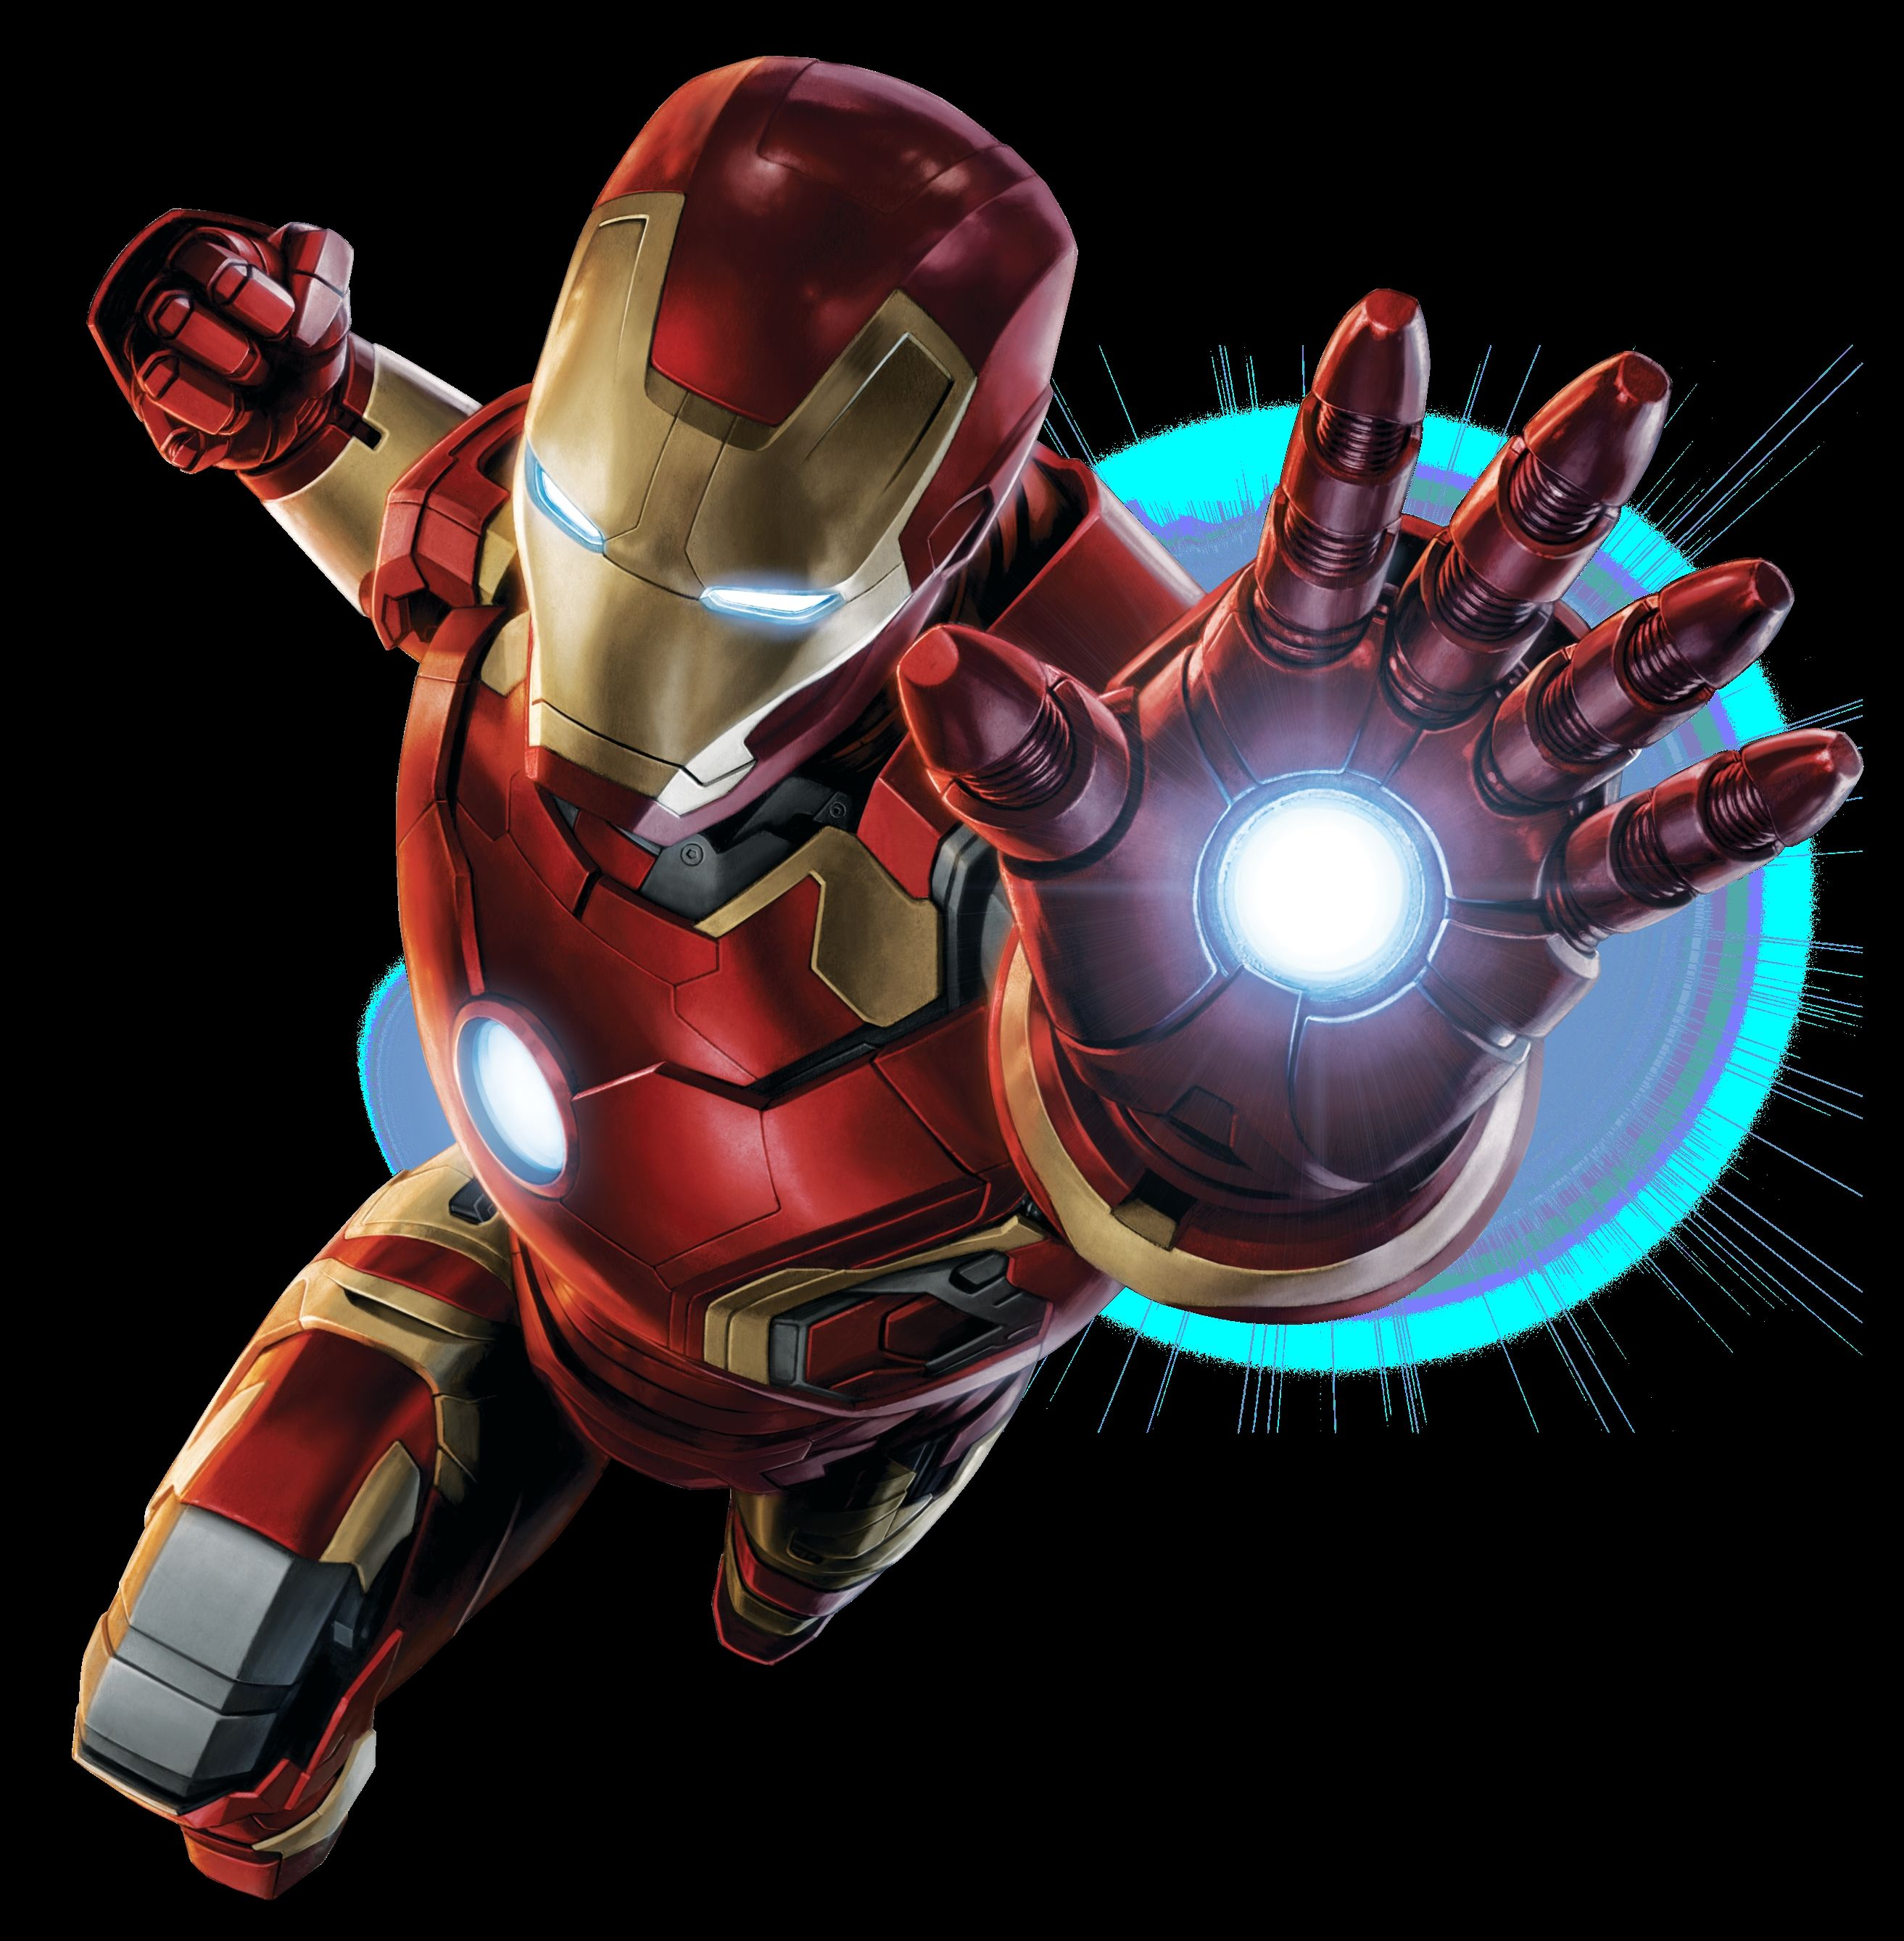 iron man 4 hd free wallpaper best games wallpapers